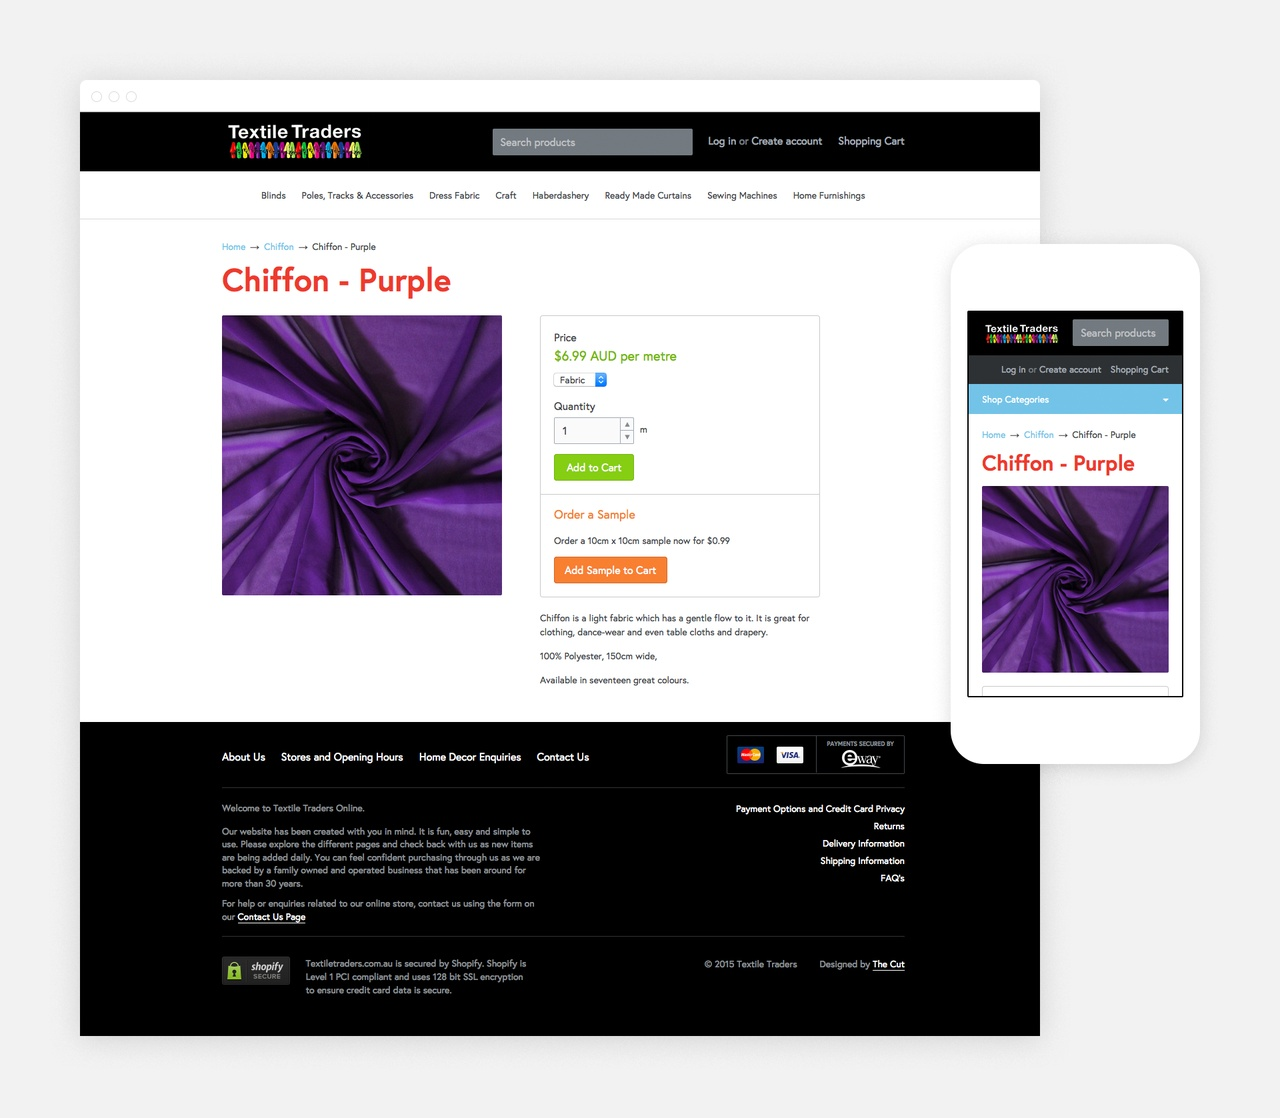 Product Information Page